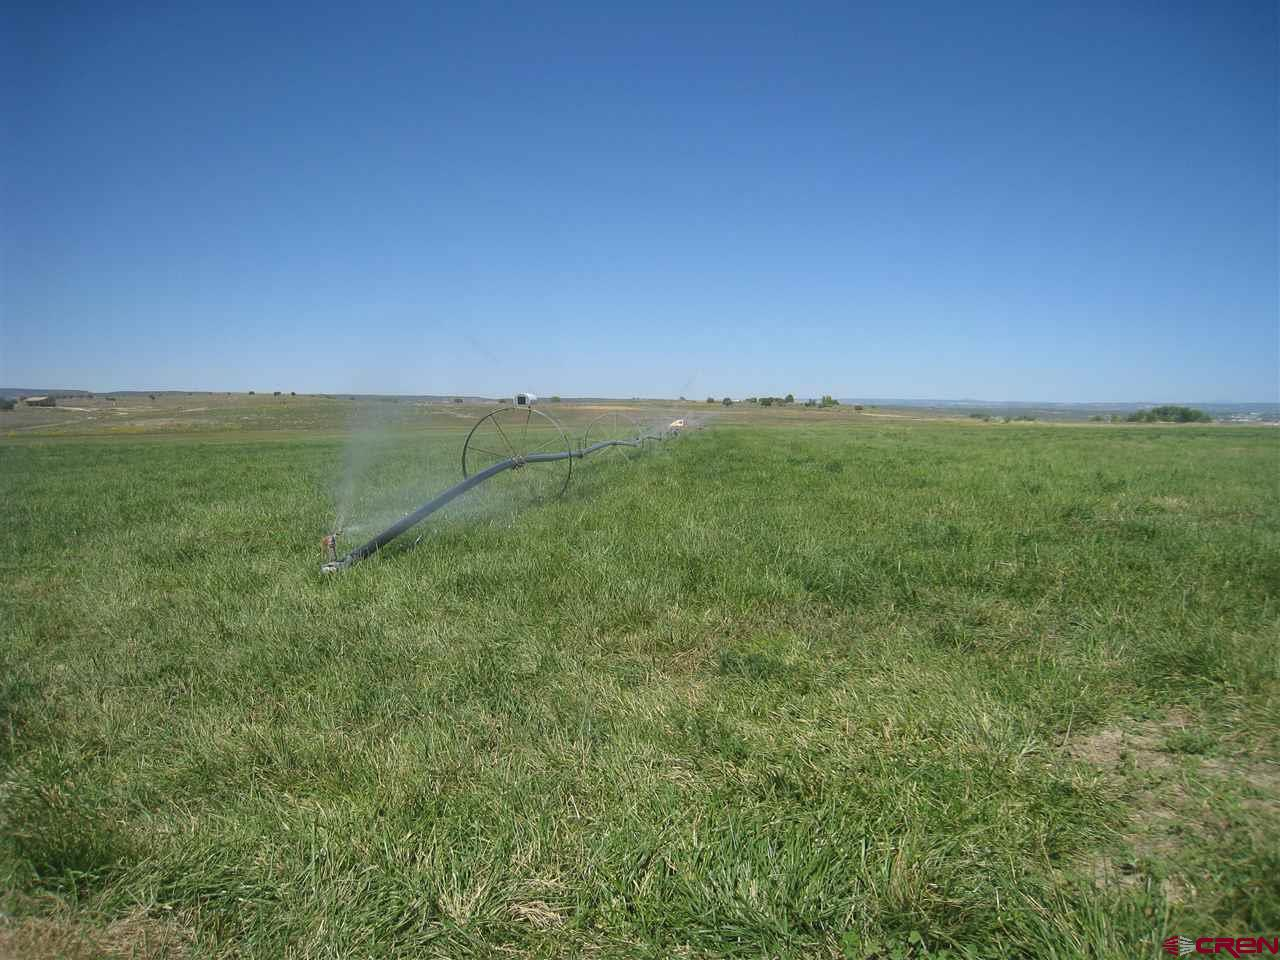 This great 35 acre tract is located in a great location south of Cortez with great views of all of the surrounding mountains. The property comes with 14 shares of water and 27 acres is currently irrigated with a sideroll sprinkler system. The lower portion is set up for hay production/grazing and the top portion is the perfect location for a home with incredible views. The water tap is already installed with 3 freeze free water faucets scattered along the property. There is already a large quonset hut located on the upper portion of the property that currently acts as storage for hay. The property is completely fenced. Very private and secluded yet close to city amenities in Cortez.